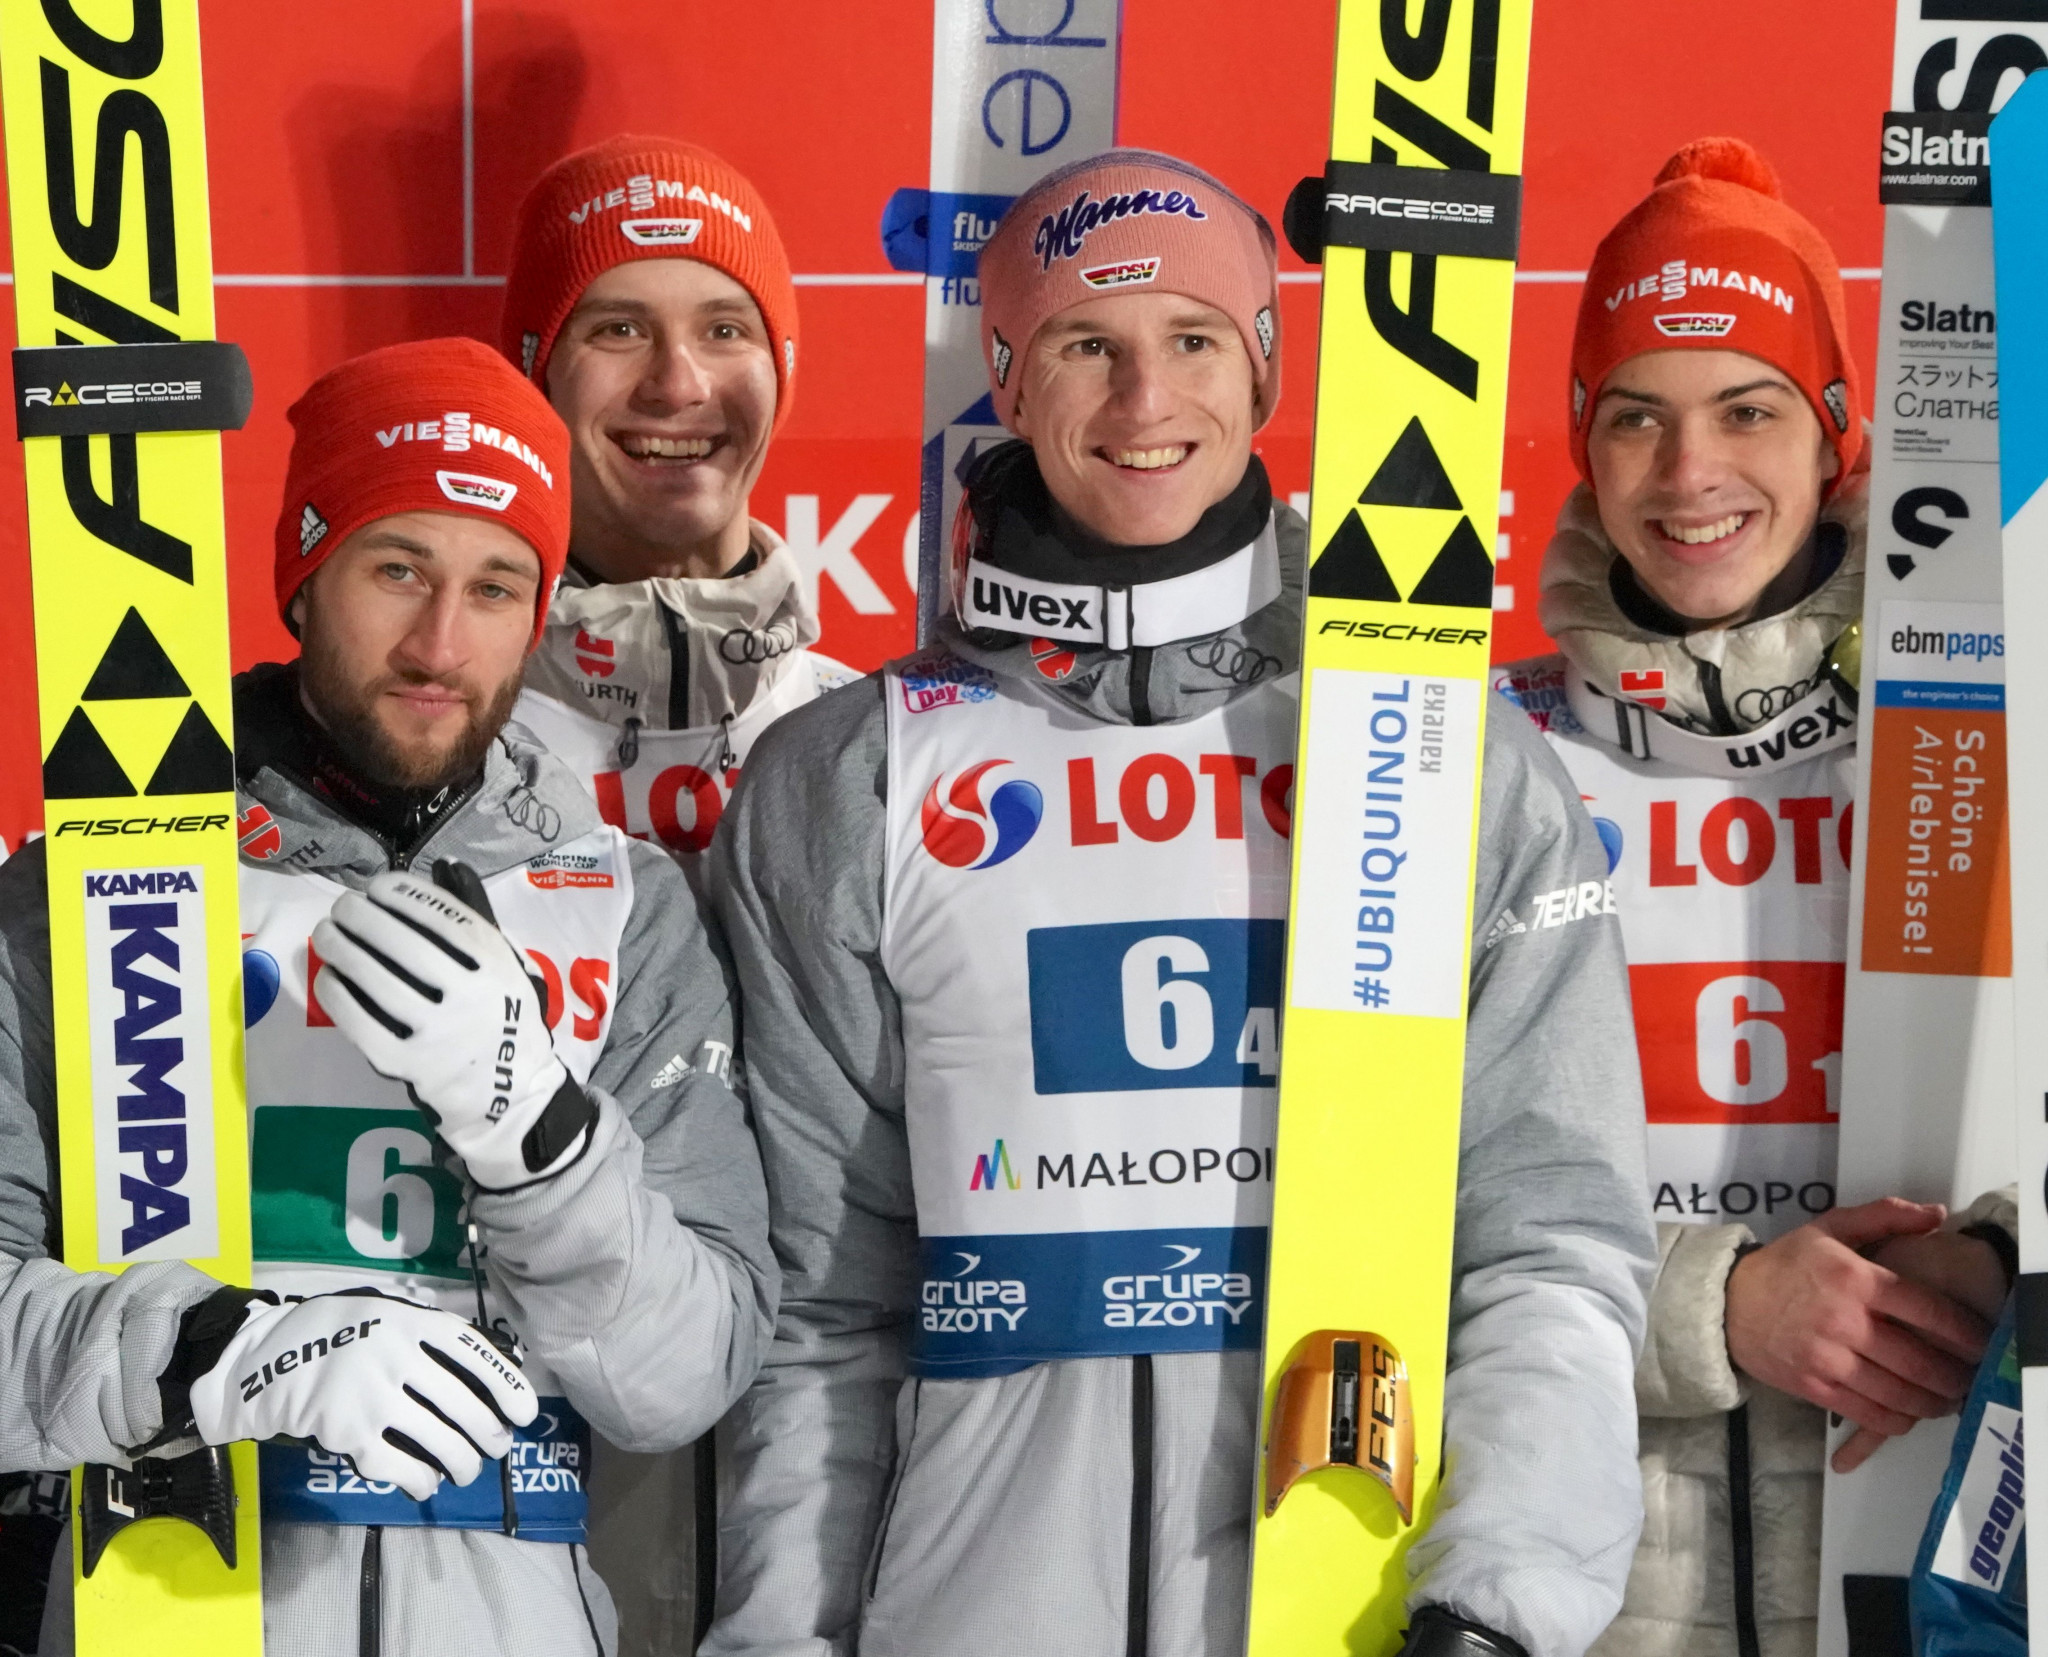 Germany triumphed in the team event at the FIS Ski Jumping World Cup event in Zakopane ©Getty Images